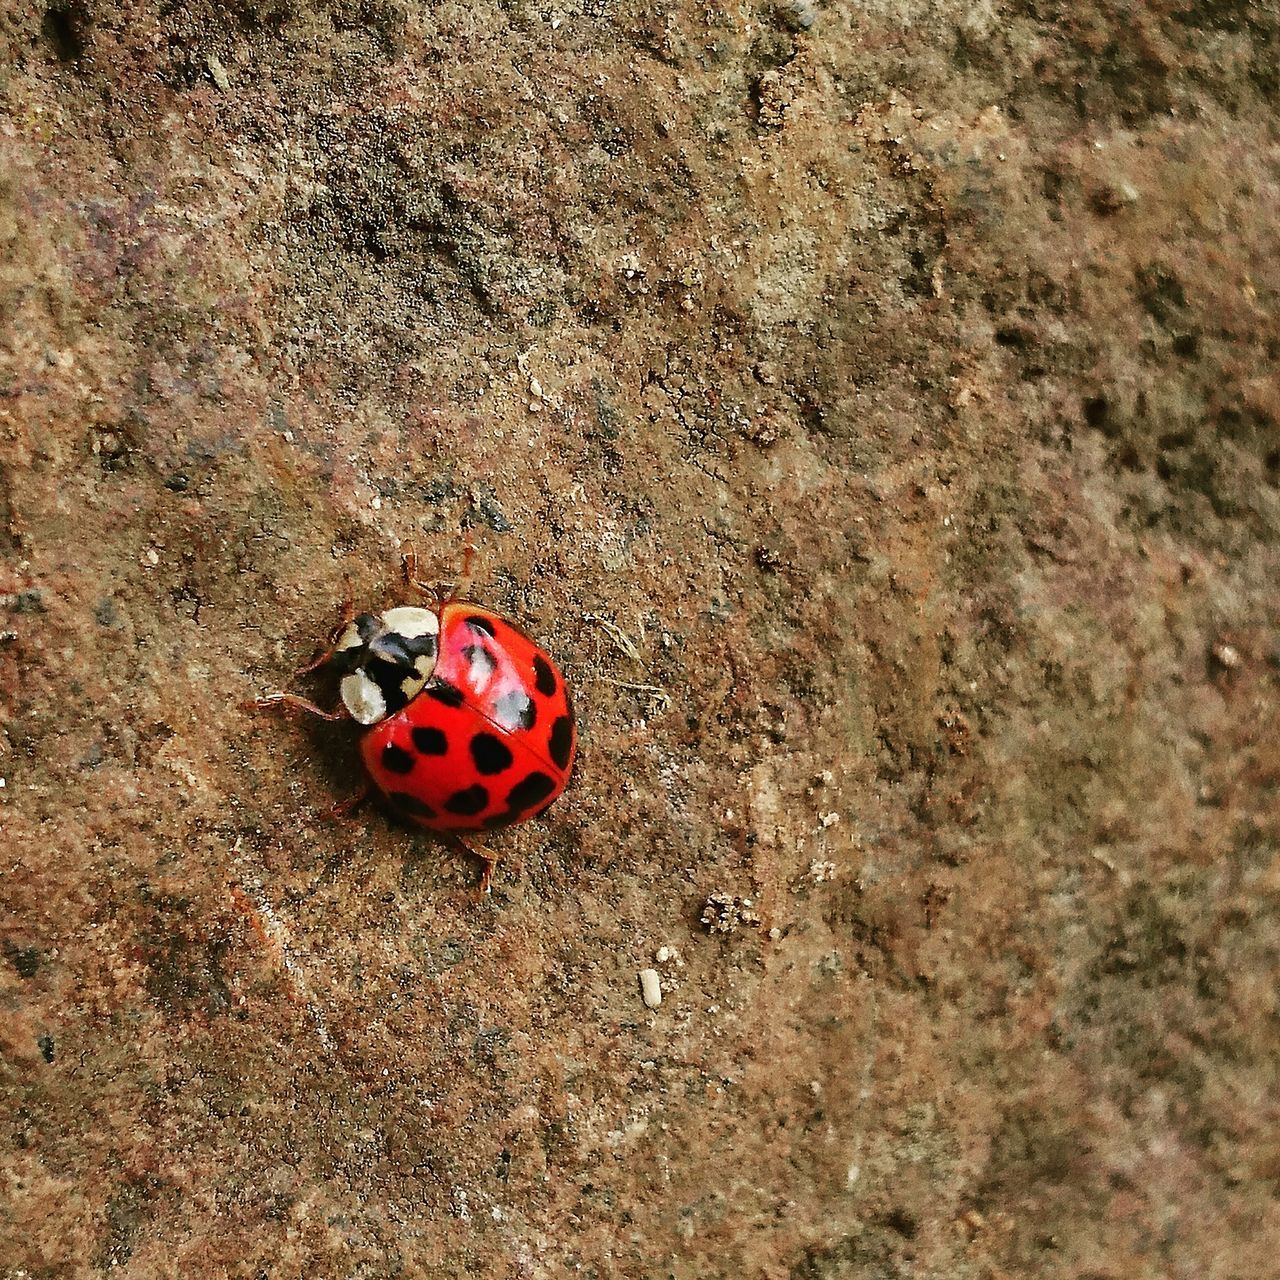 insect, animals in the wild, animal themes, one animal, red, ladybug, spotted, wildlife, high angle view, tiny, animal wildlife, day, outdoors, no people, close-up, nature, full length